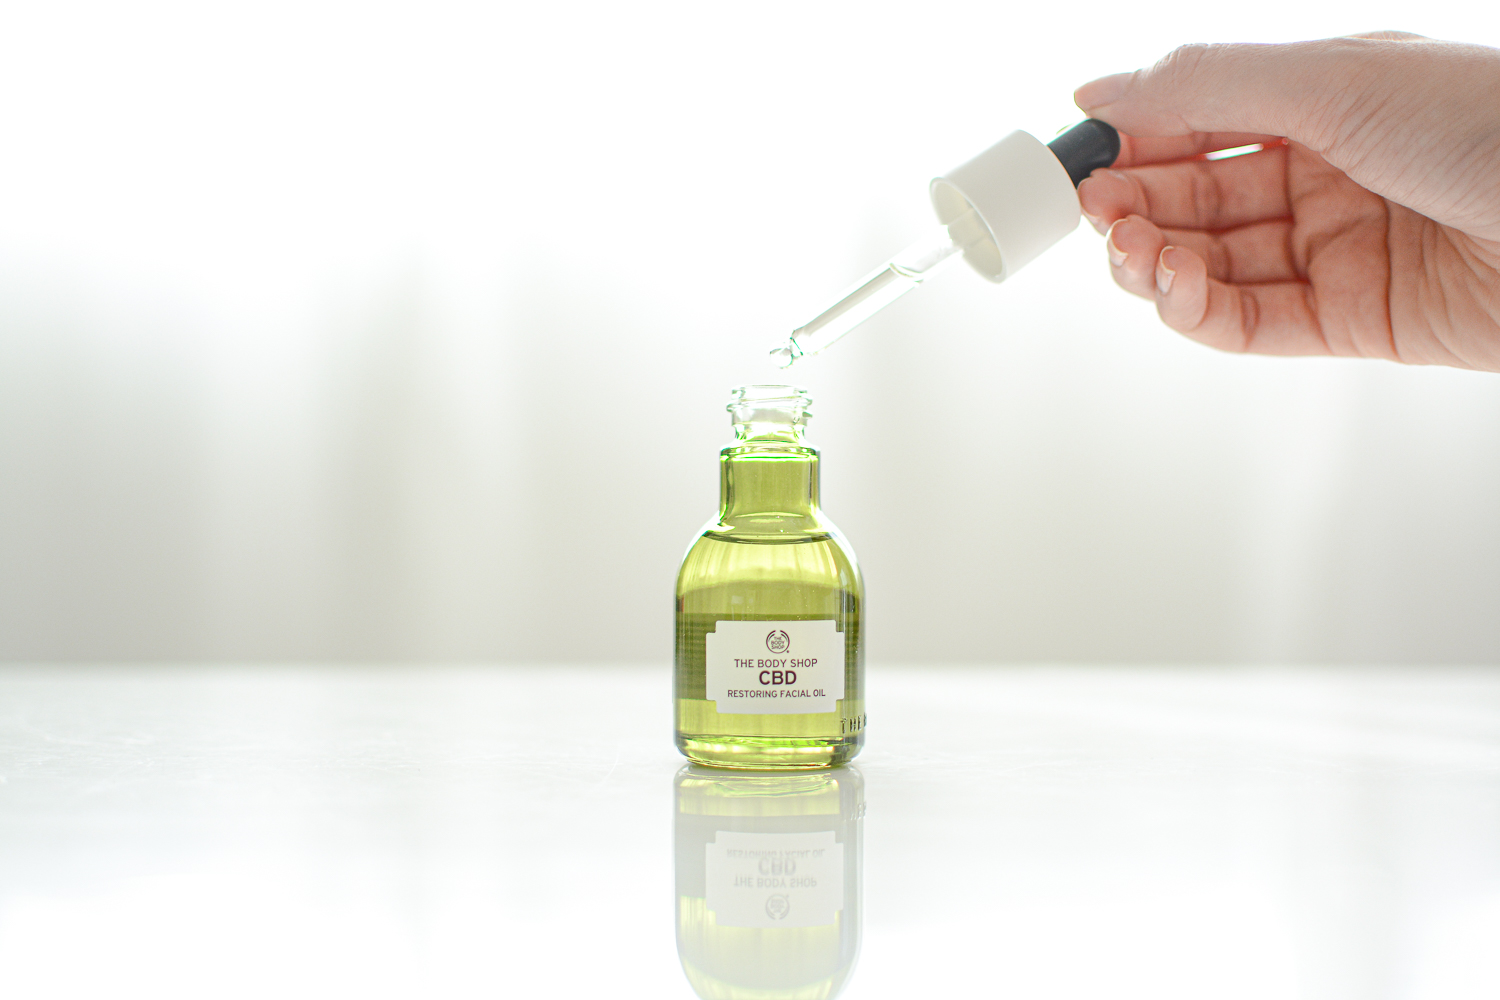 The Body Shop CBD Restoring Facial Oil